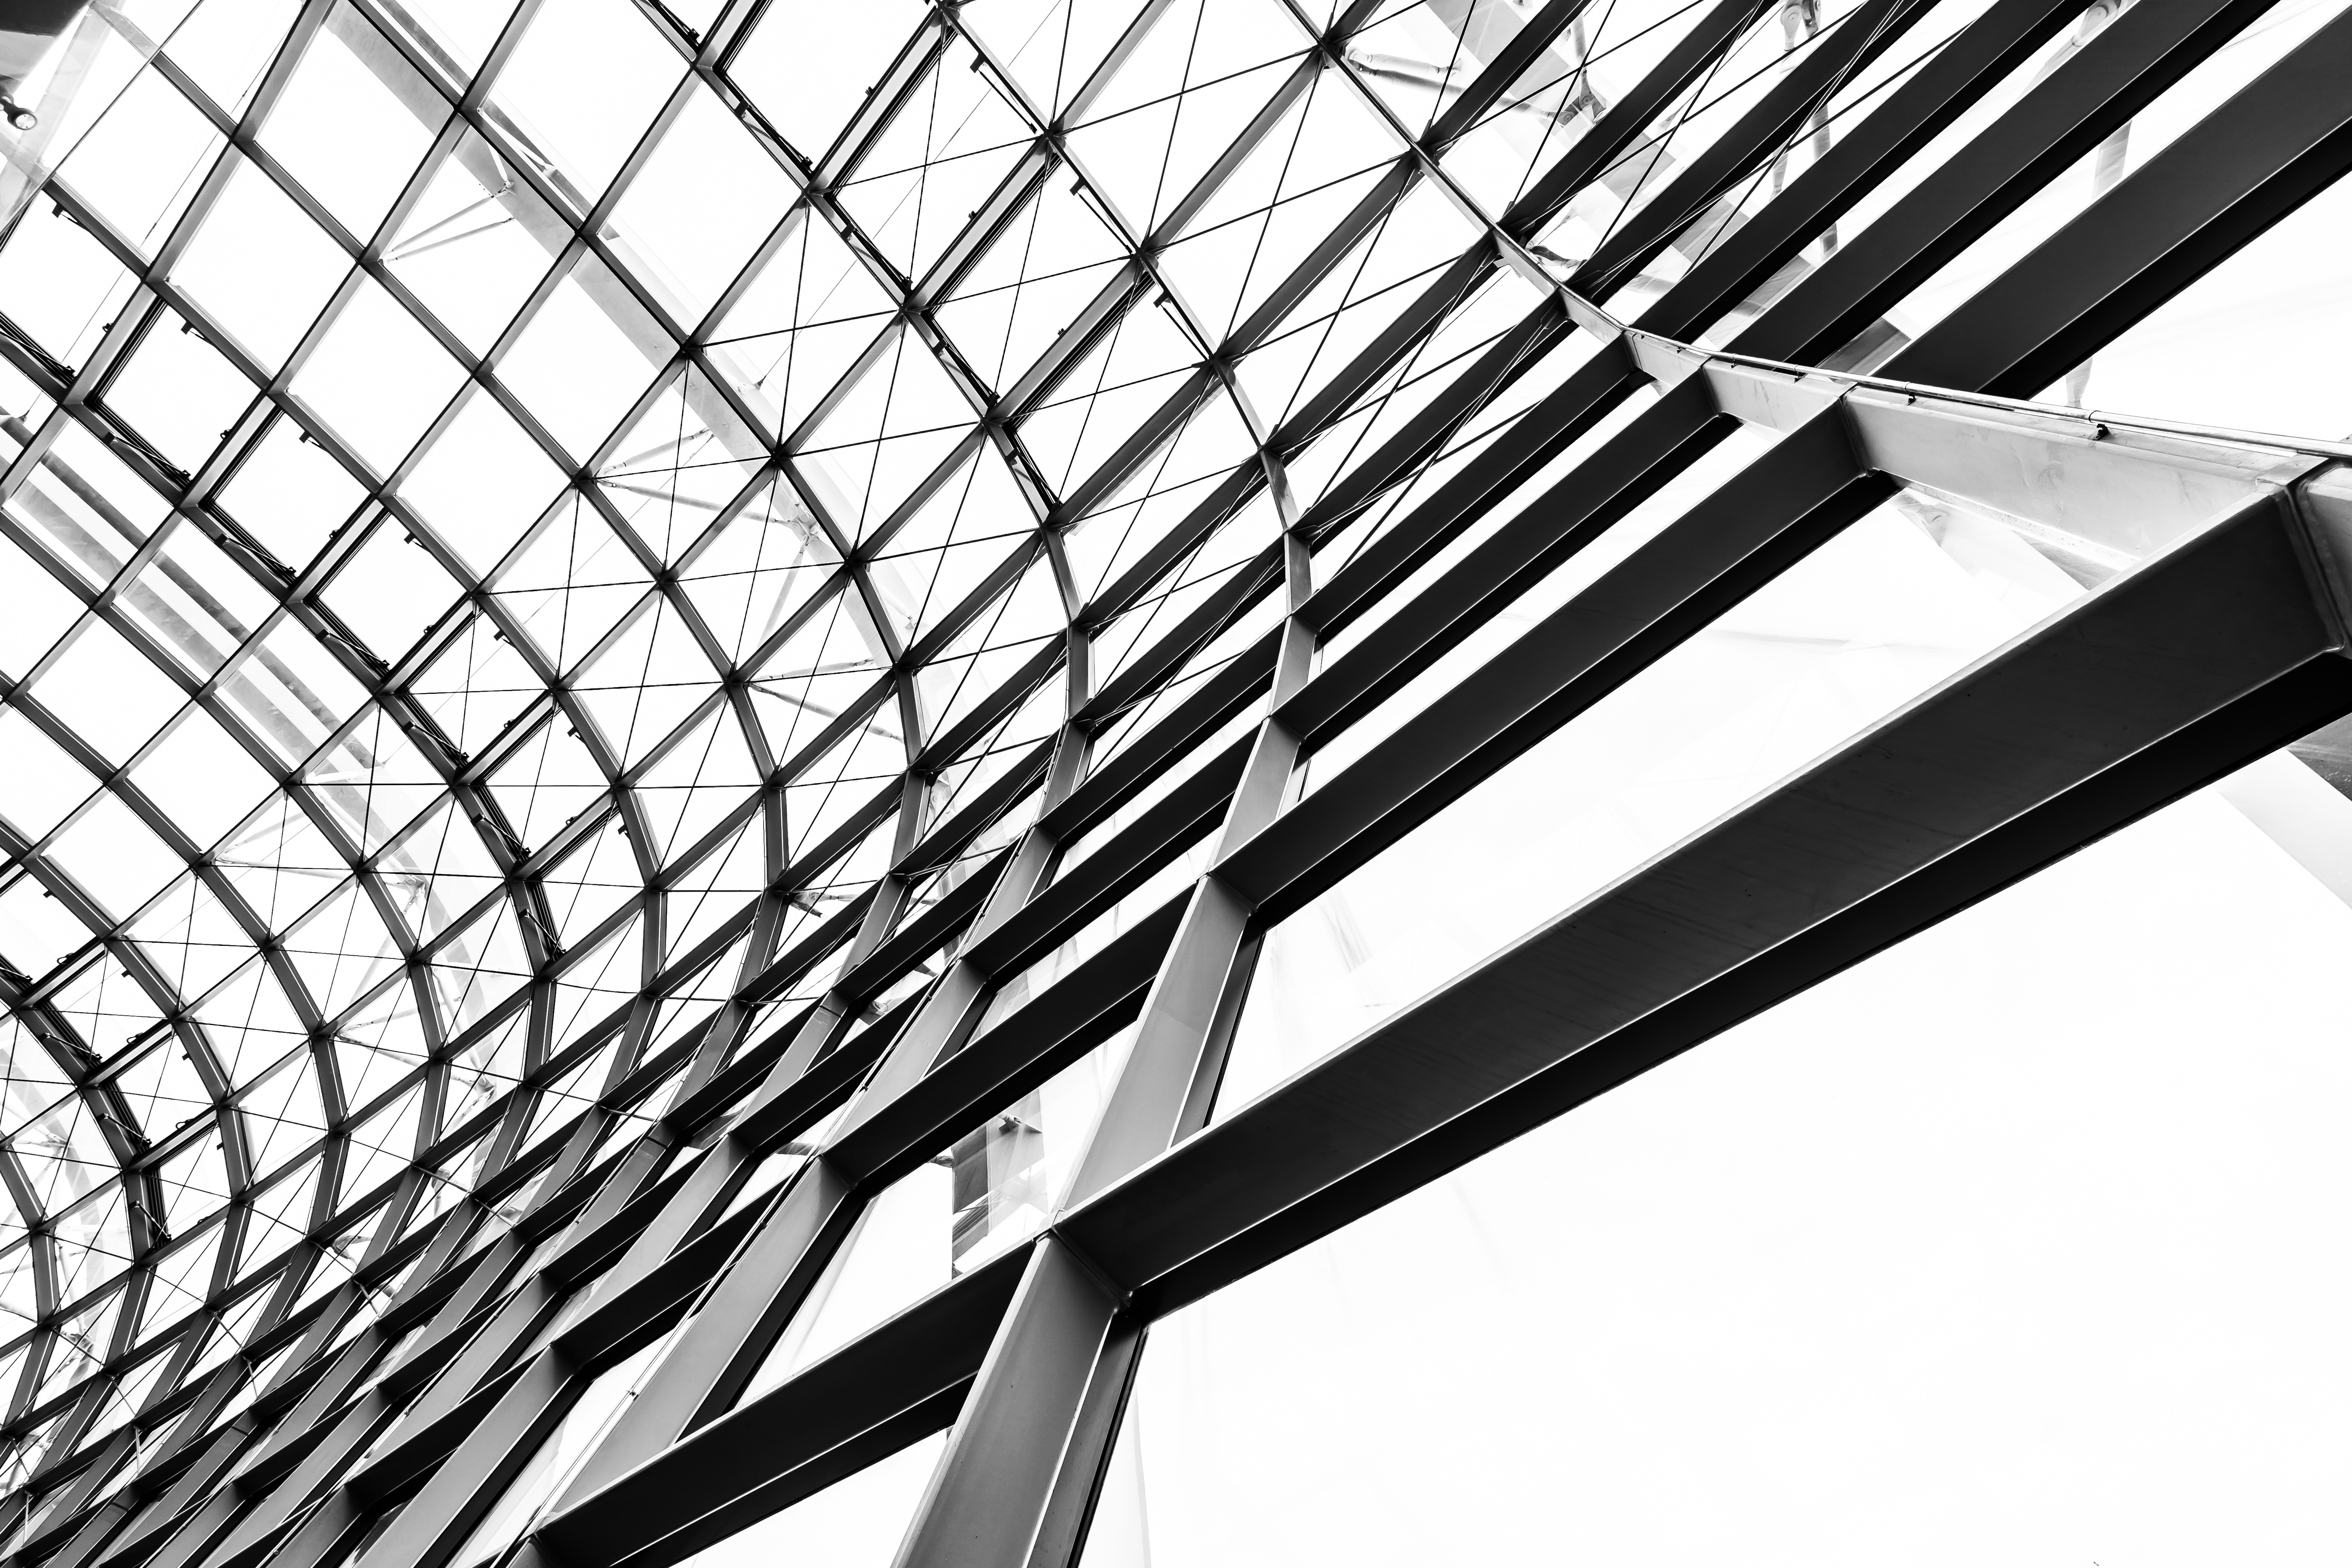 abstract-glass-window-roof-architecture-exterior.jpg